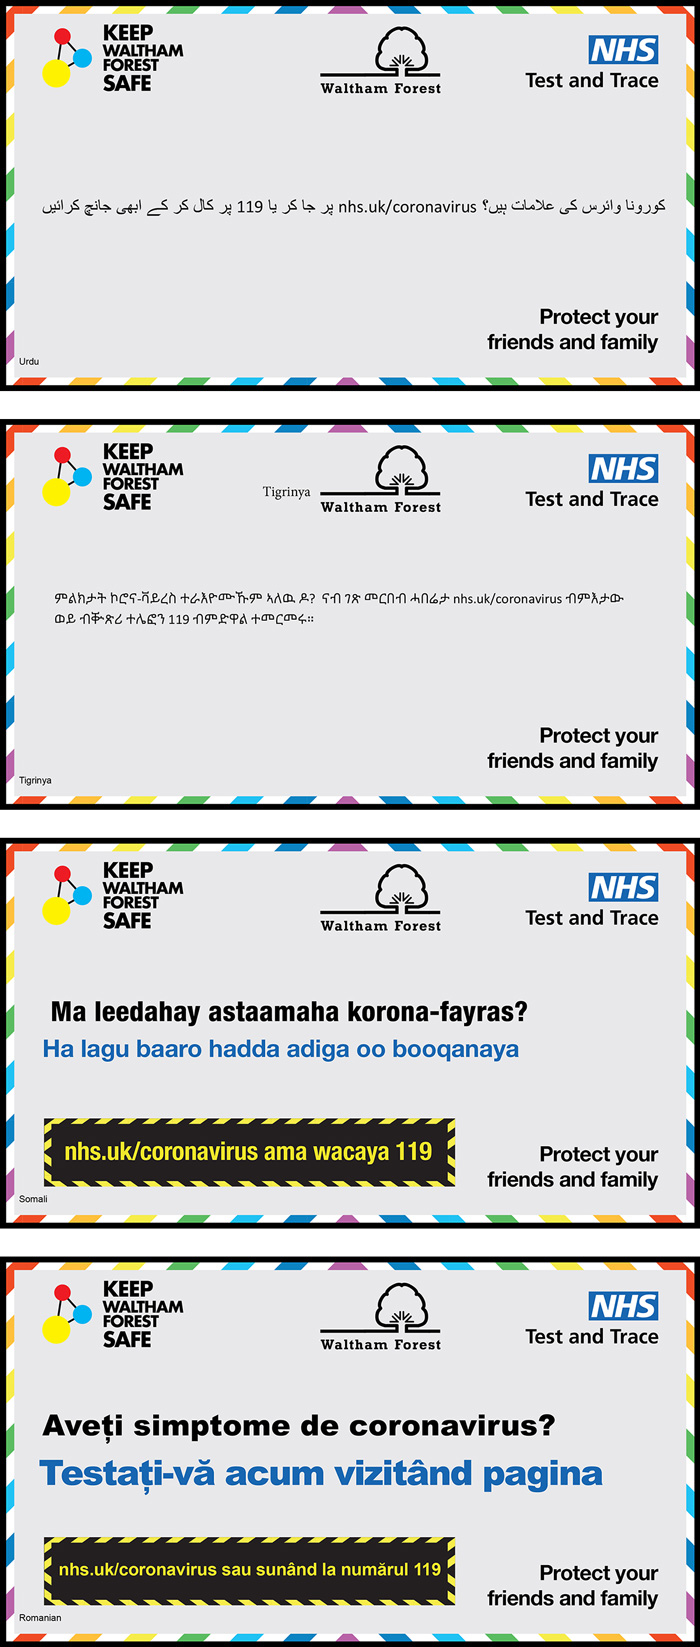 Test and trace campaign poster in different languages: Covid symptoms? Get tested now. More information is in the article.